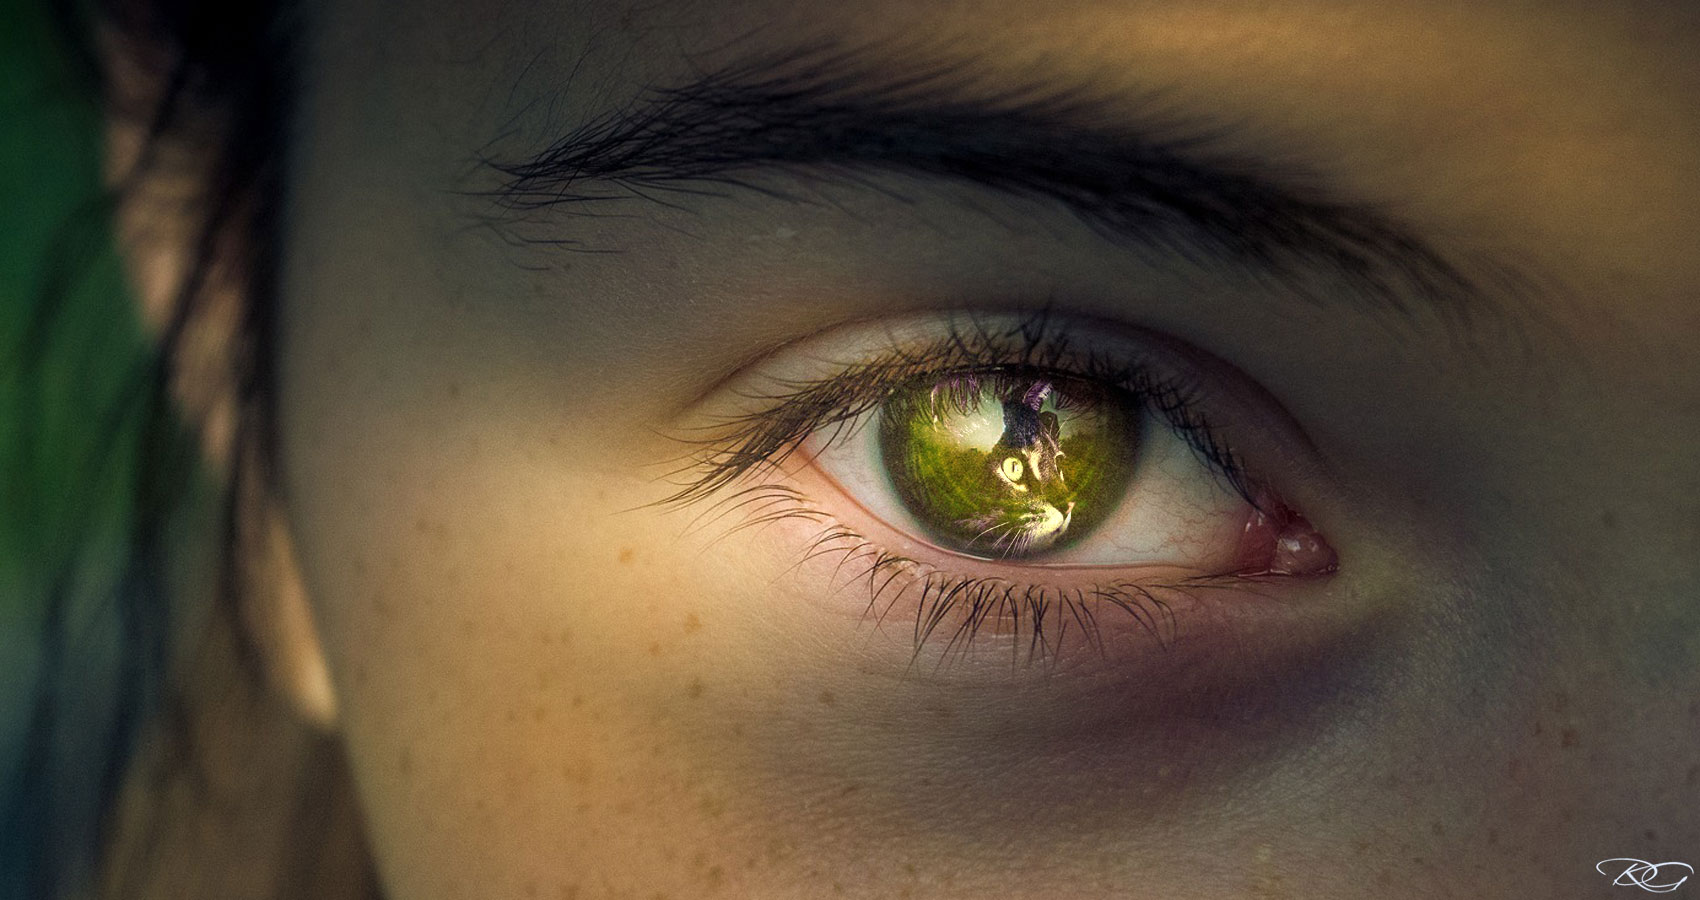 Green In Me, a poem written by Anshika Sharma at Spillwords.com